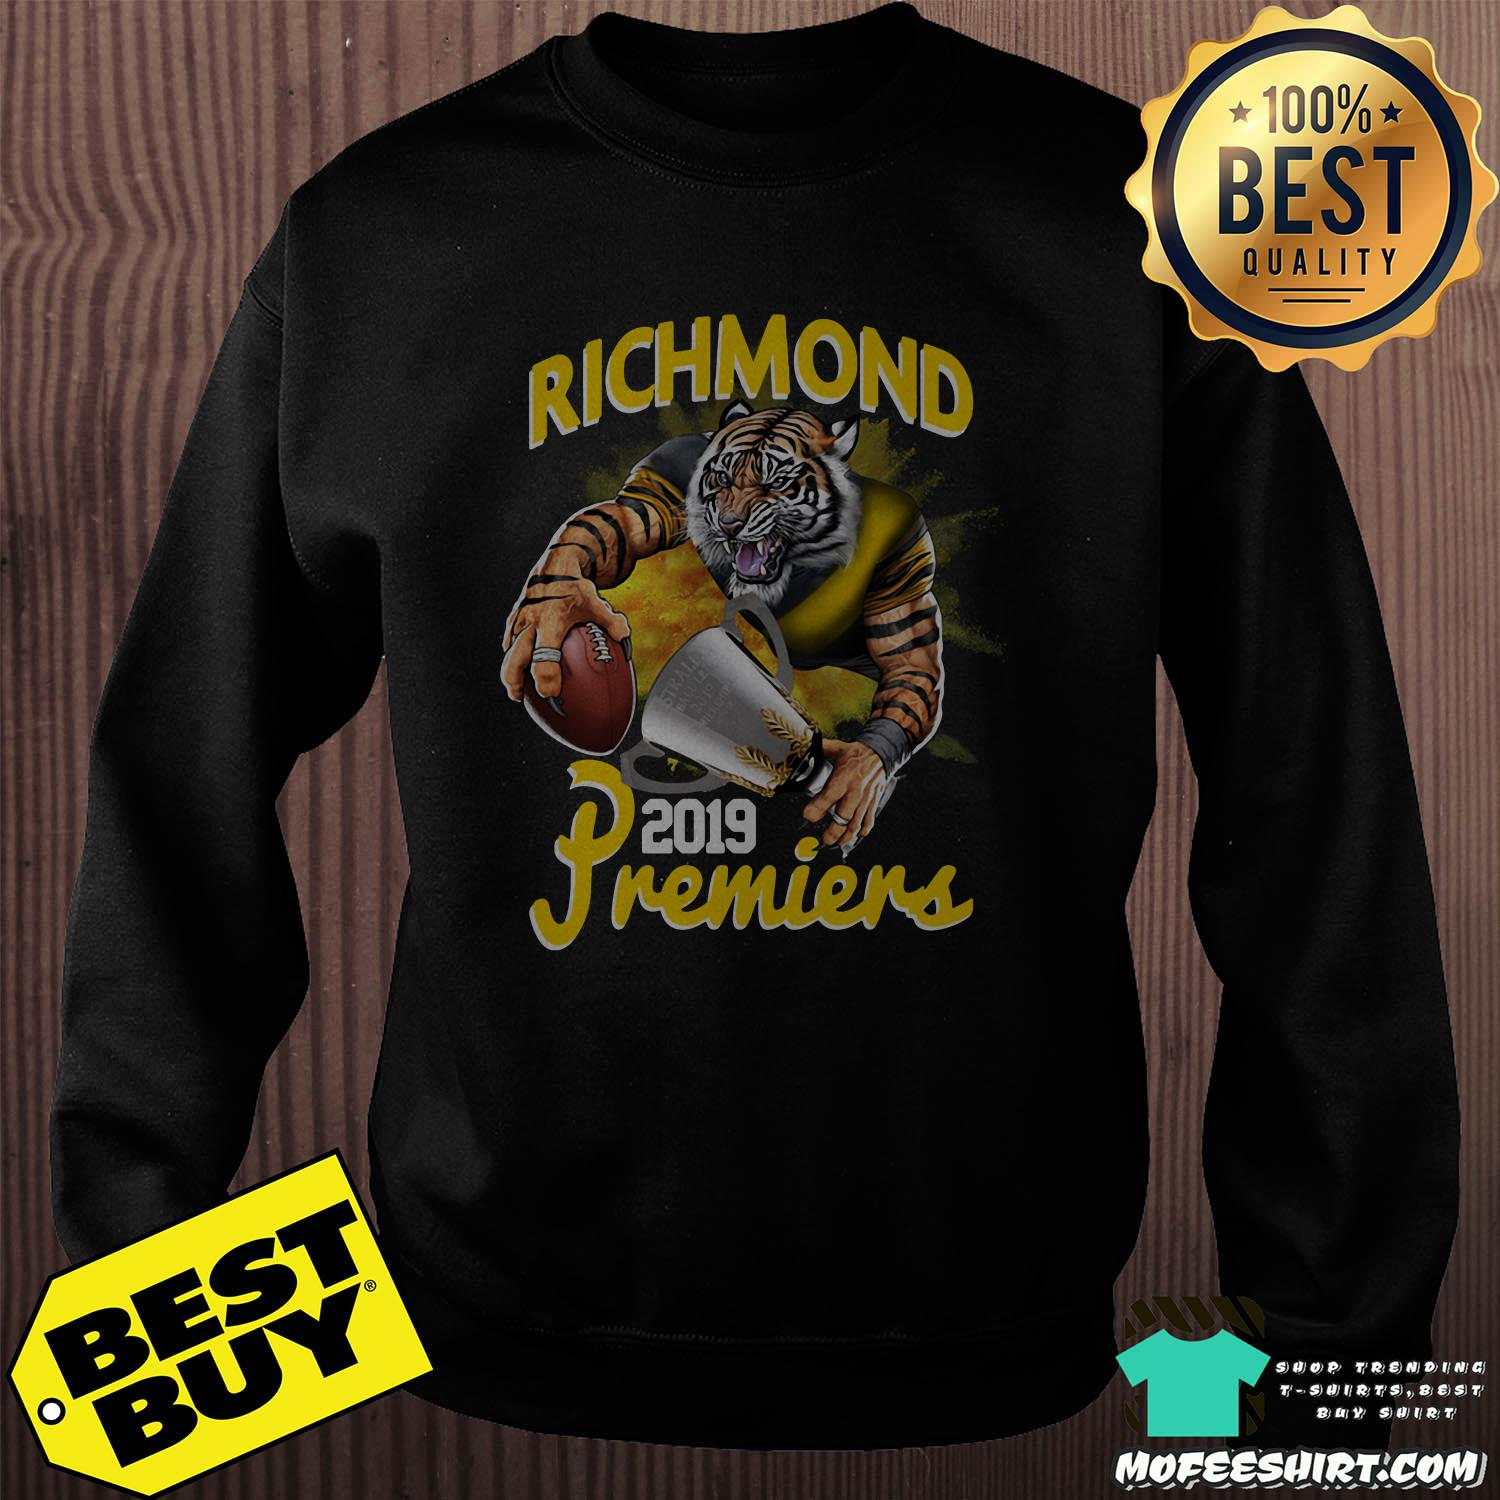 afl richmond tigers premiers 2019 sweatshirt - AFL Richmond Tigers Premiers 2019 shirt